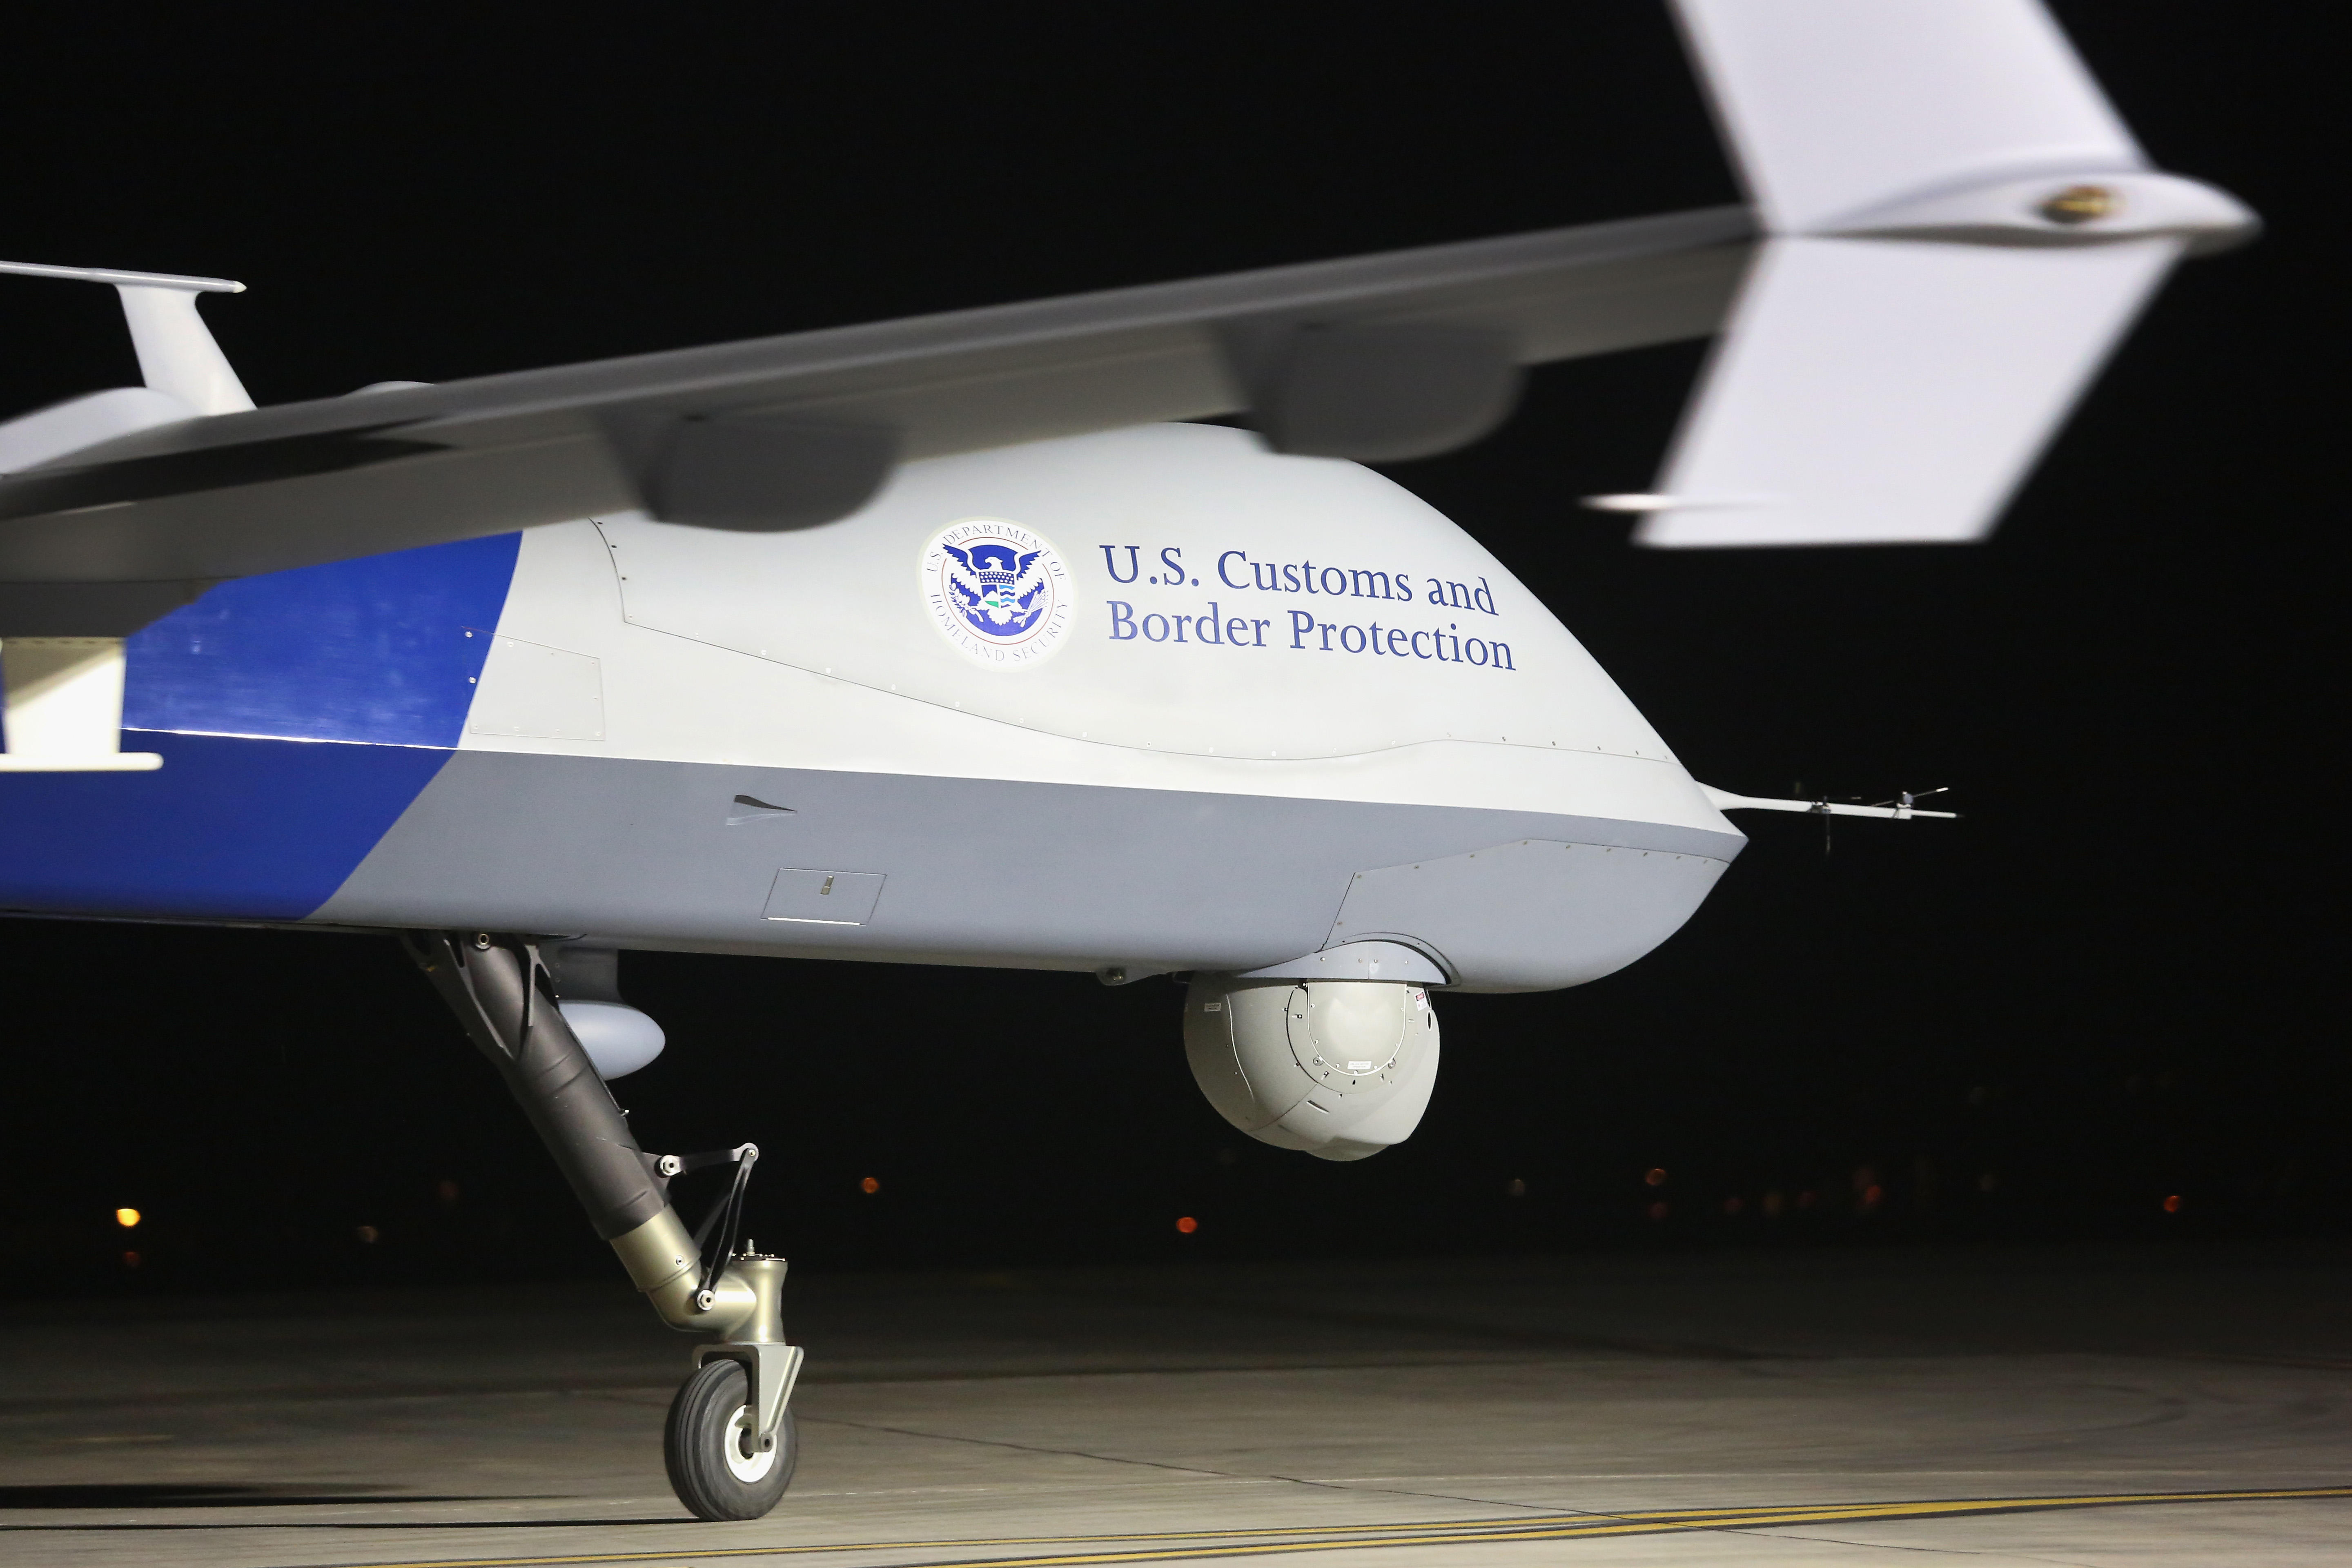 A Predator drone used by the US Customs and Border Protection agency for surveillance flights near the Mexican border.